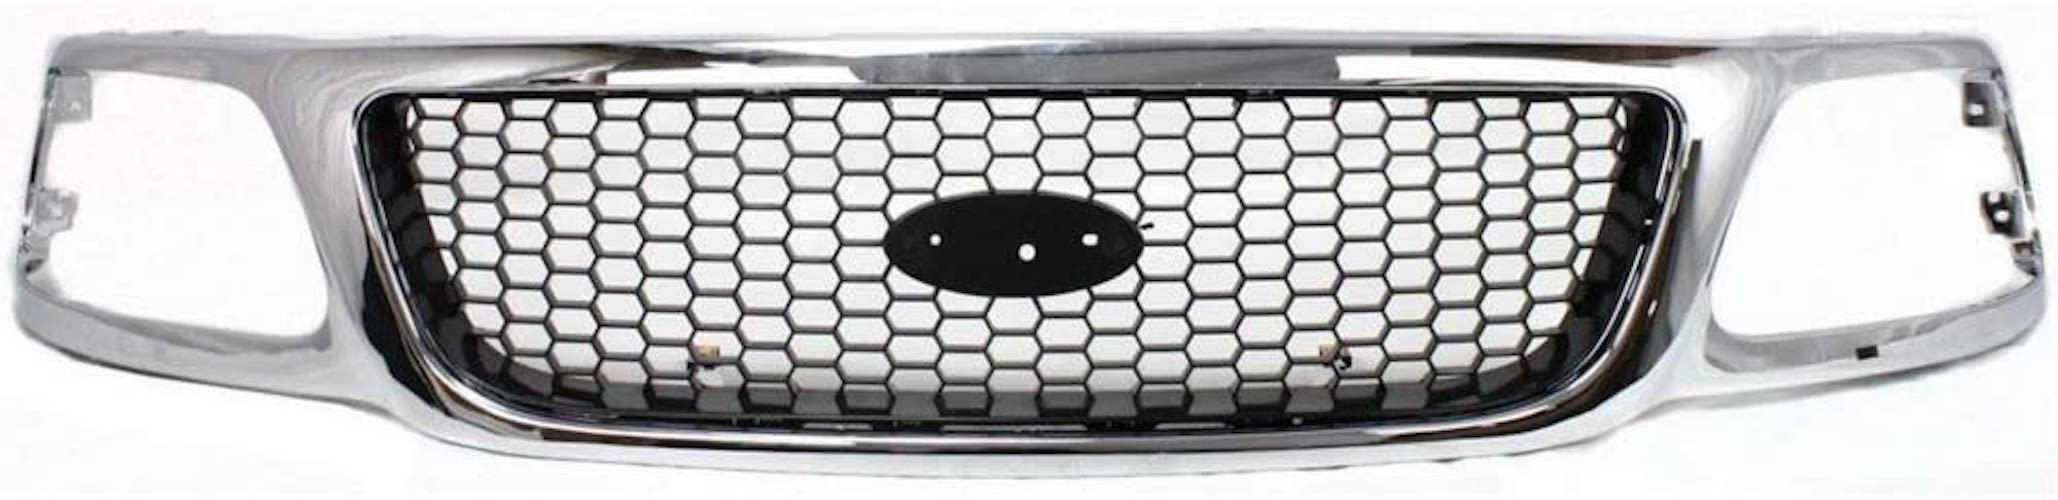 8. Titanium Plus Autoparts Fits For 2000-2003 Ford F-150 Front Grille FO1200404 Chrome Black